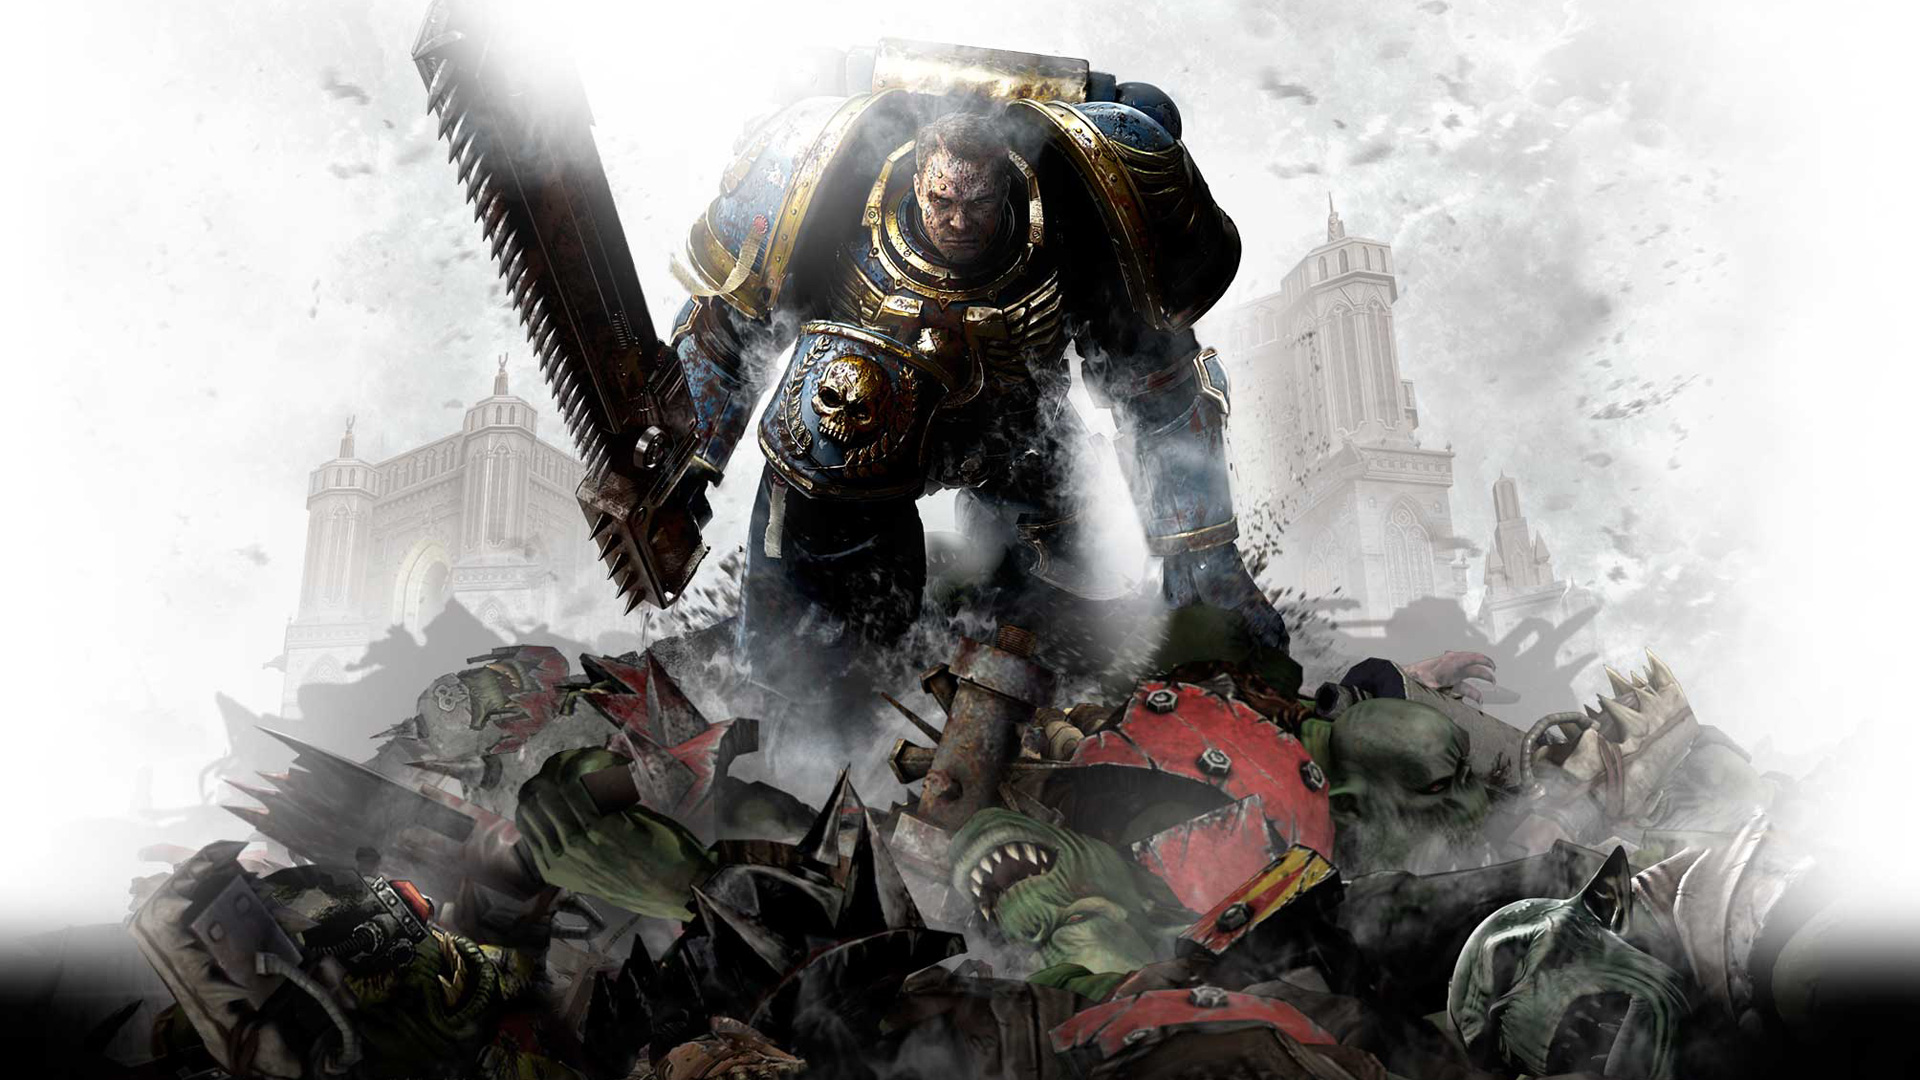 Warhammer 40K Space Marine wallpaper 4